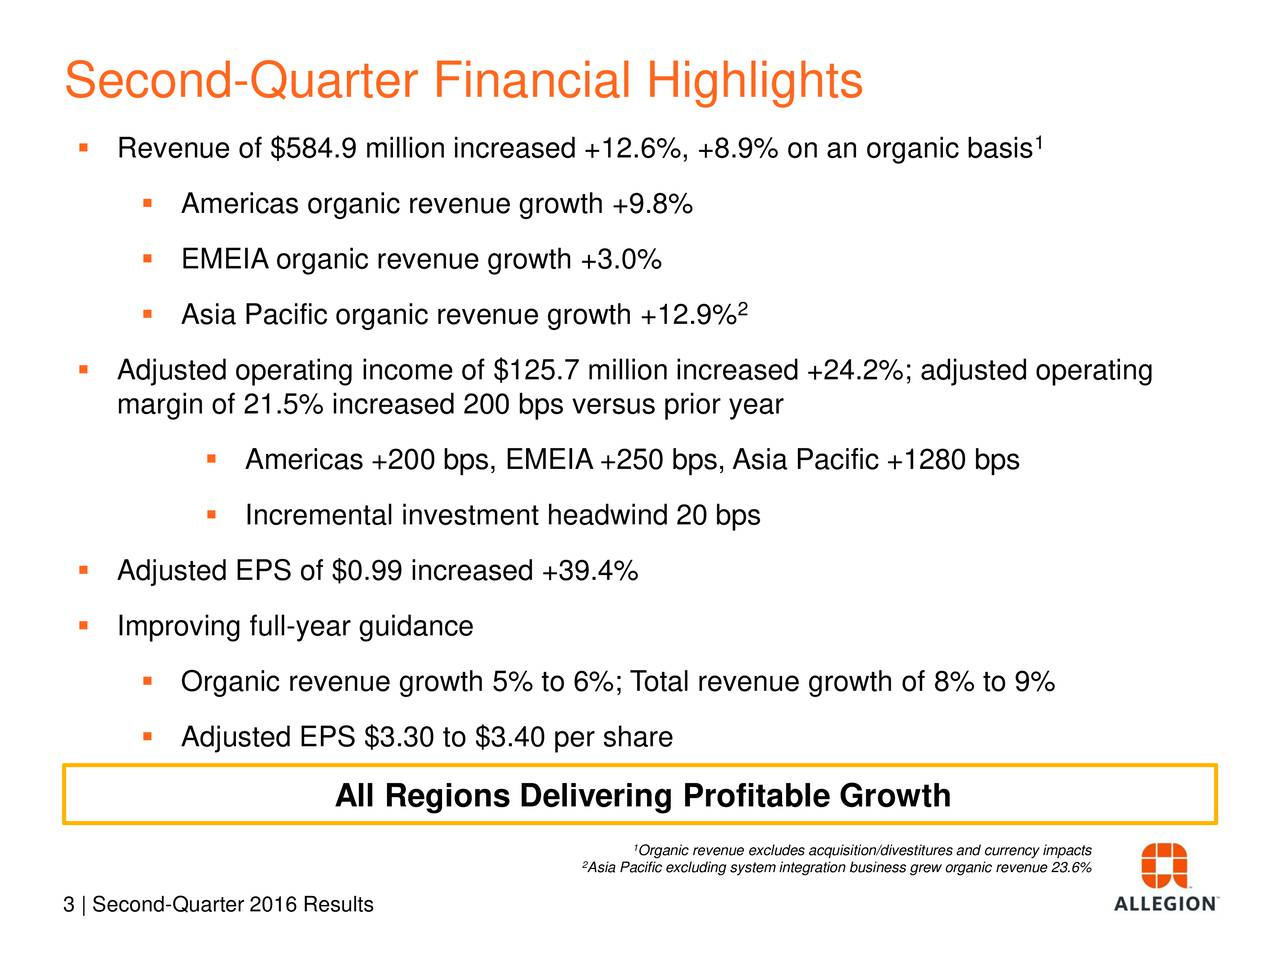 Revenue of $584.9 million increased +12.6%, +8.9% on an organic basis 1 Americas organic revenue growth +9.8% EMEIA organic revenue growth +3.0% 2 Asia Pacific organic revenue growth +12.9% Adjusted operating income of $125.7 million increased +24.2%; adjusted operating margin of 21.5% increased 200 bps versus prior year Americas +200 bps, EMEIA +250 bps, Asia Pacific +1280 bps Incremental investment headwind 20 bps Adjusted EPS of $0.99 increased +39.4% Improving full-year guidance Organic revenue growth 5% to 6%; Total revenue growth of 8% to 9% Adjusted EPS $3.30 to $3.40 per share All Regions Delivering Profitable Growth 2 1Organic revenue excludes acquisition/divestitures and currency impacts Asia Pacific excluding system integration business grew organic revenue 23.6% 3 | Second-Quarter 2016 Results